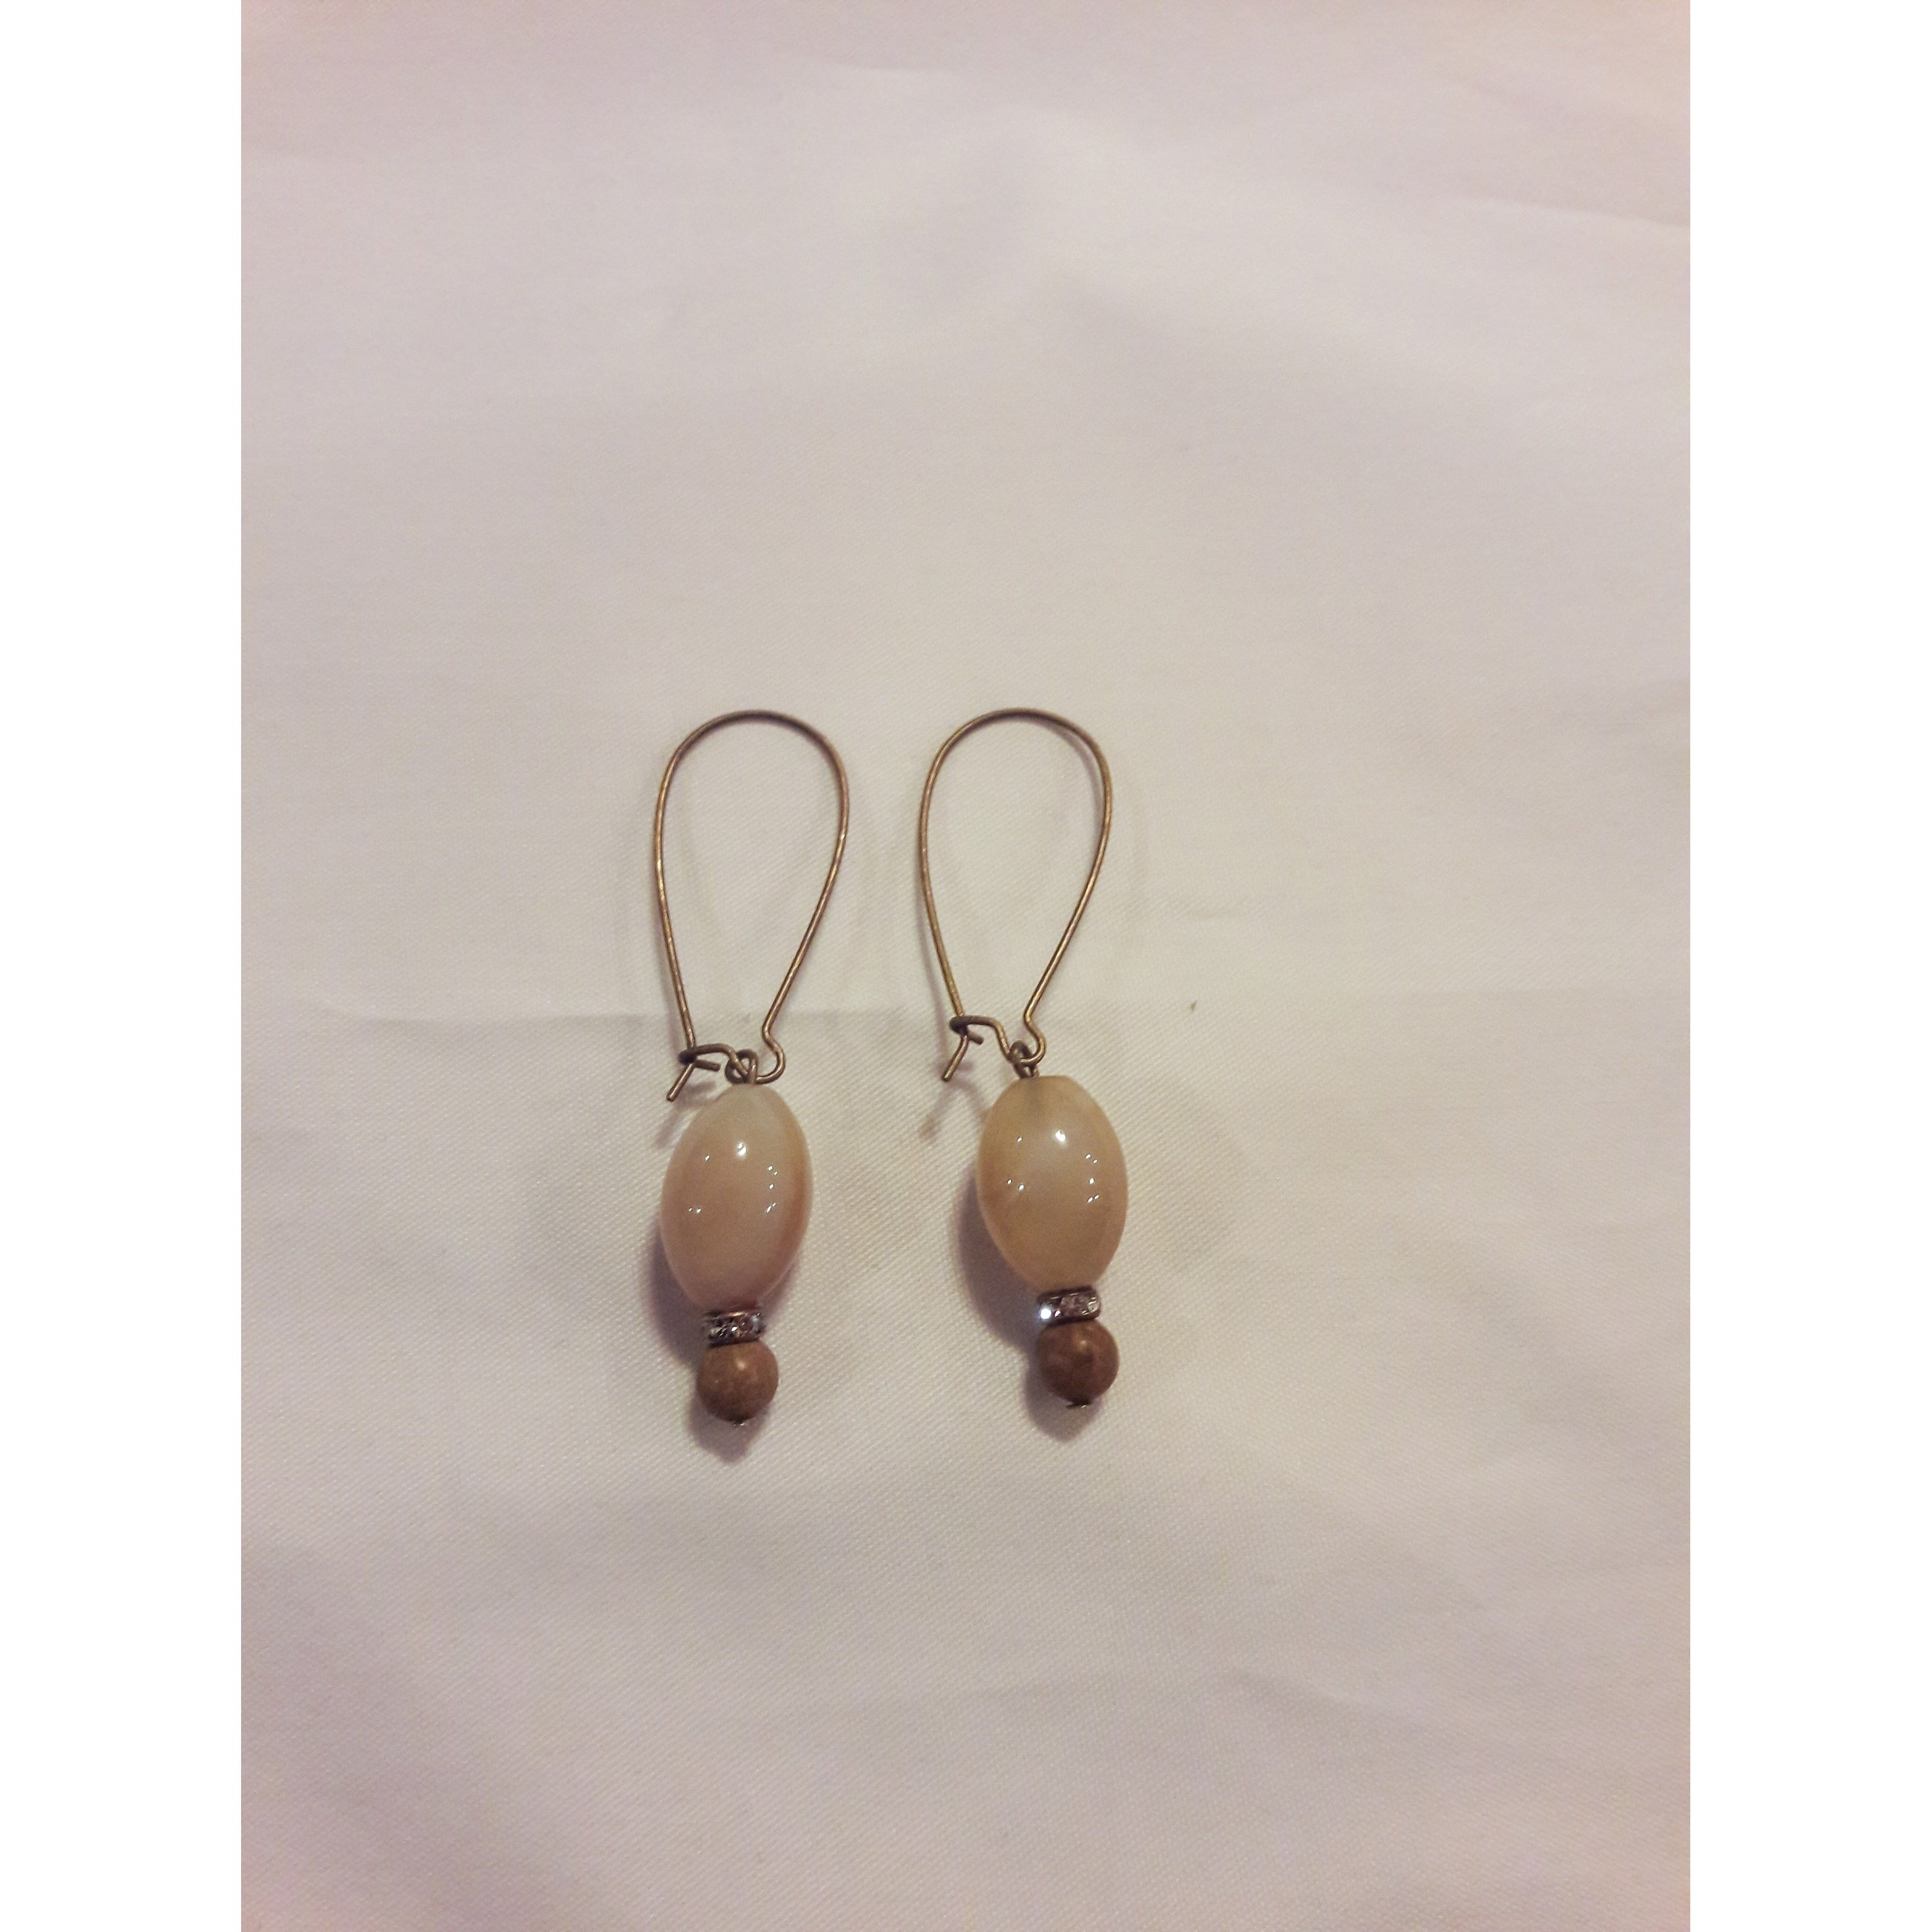 Antique Bronze Plated Dangle Earrings